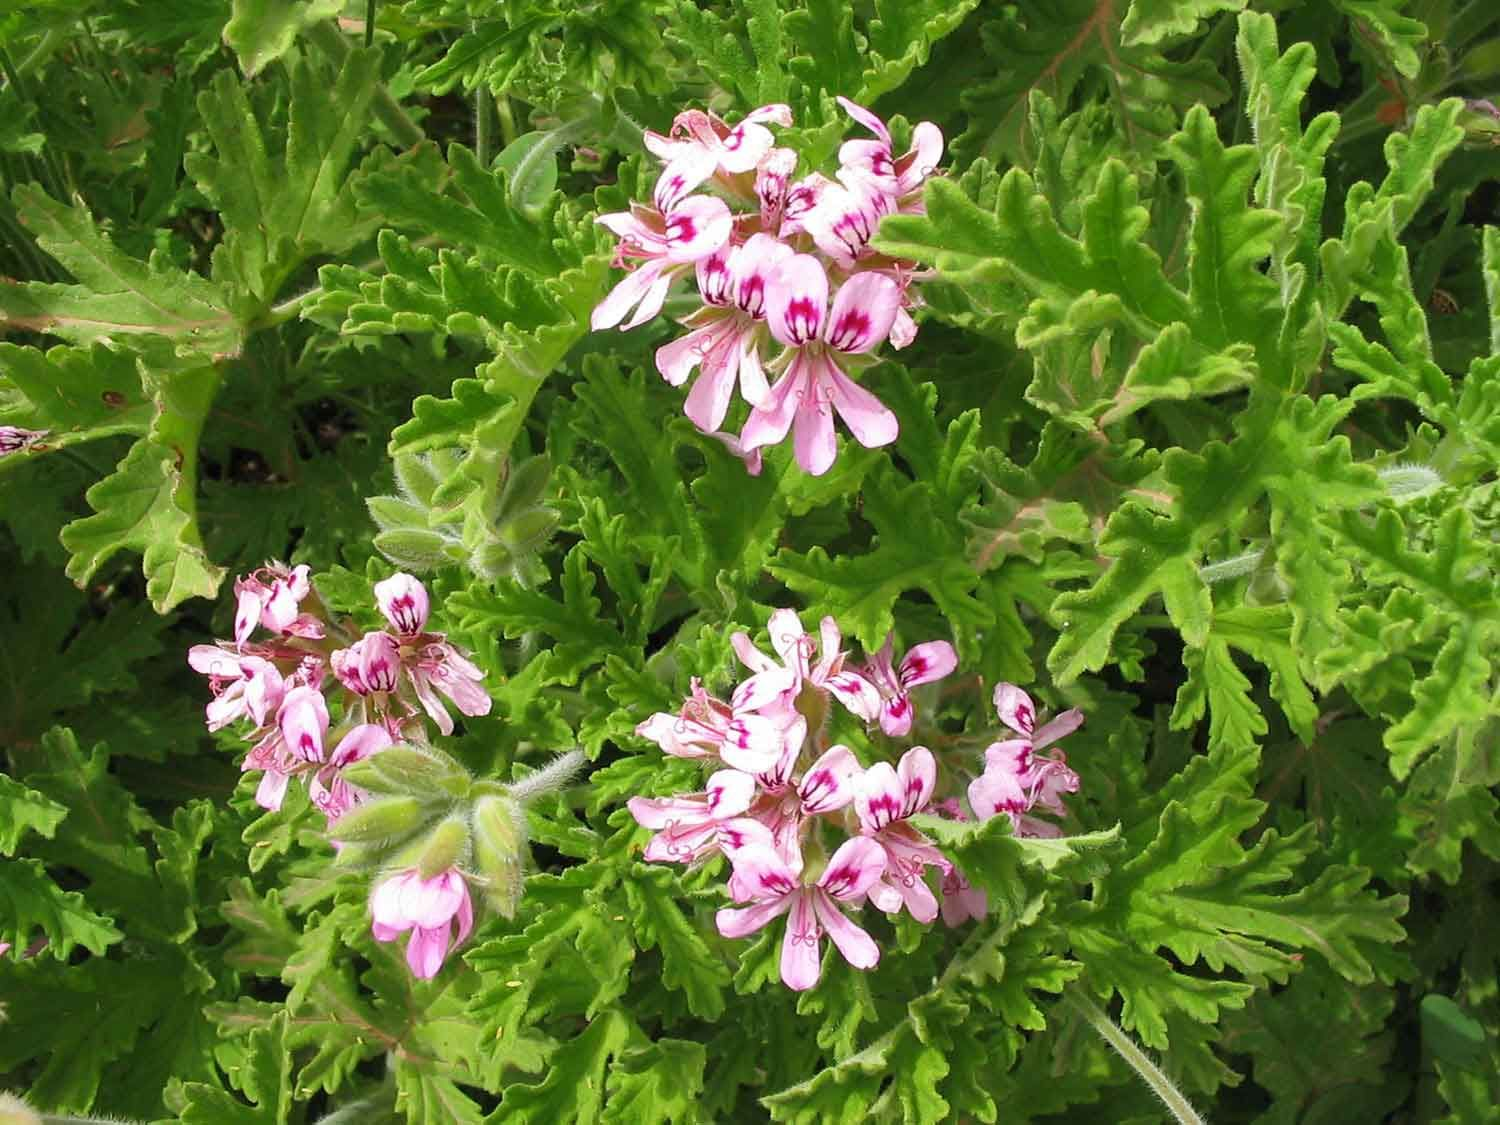 geranium pelargonium graveolens botanicals we work with pinterest plants garden ideas. Black Bedroom Furniture Sets. Home Design Ideas